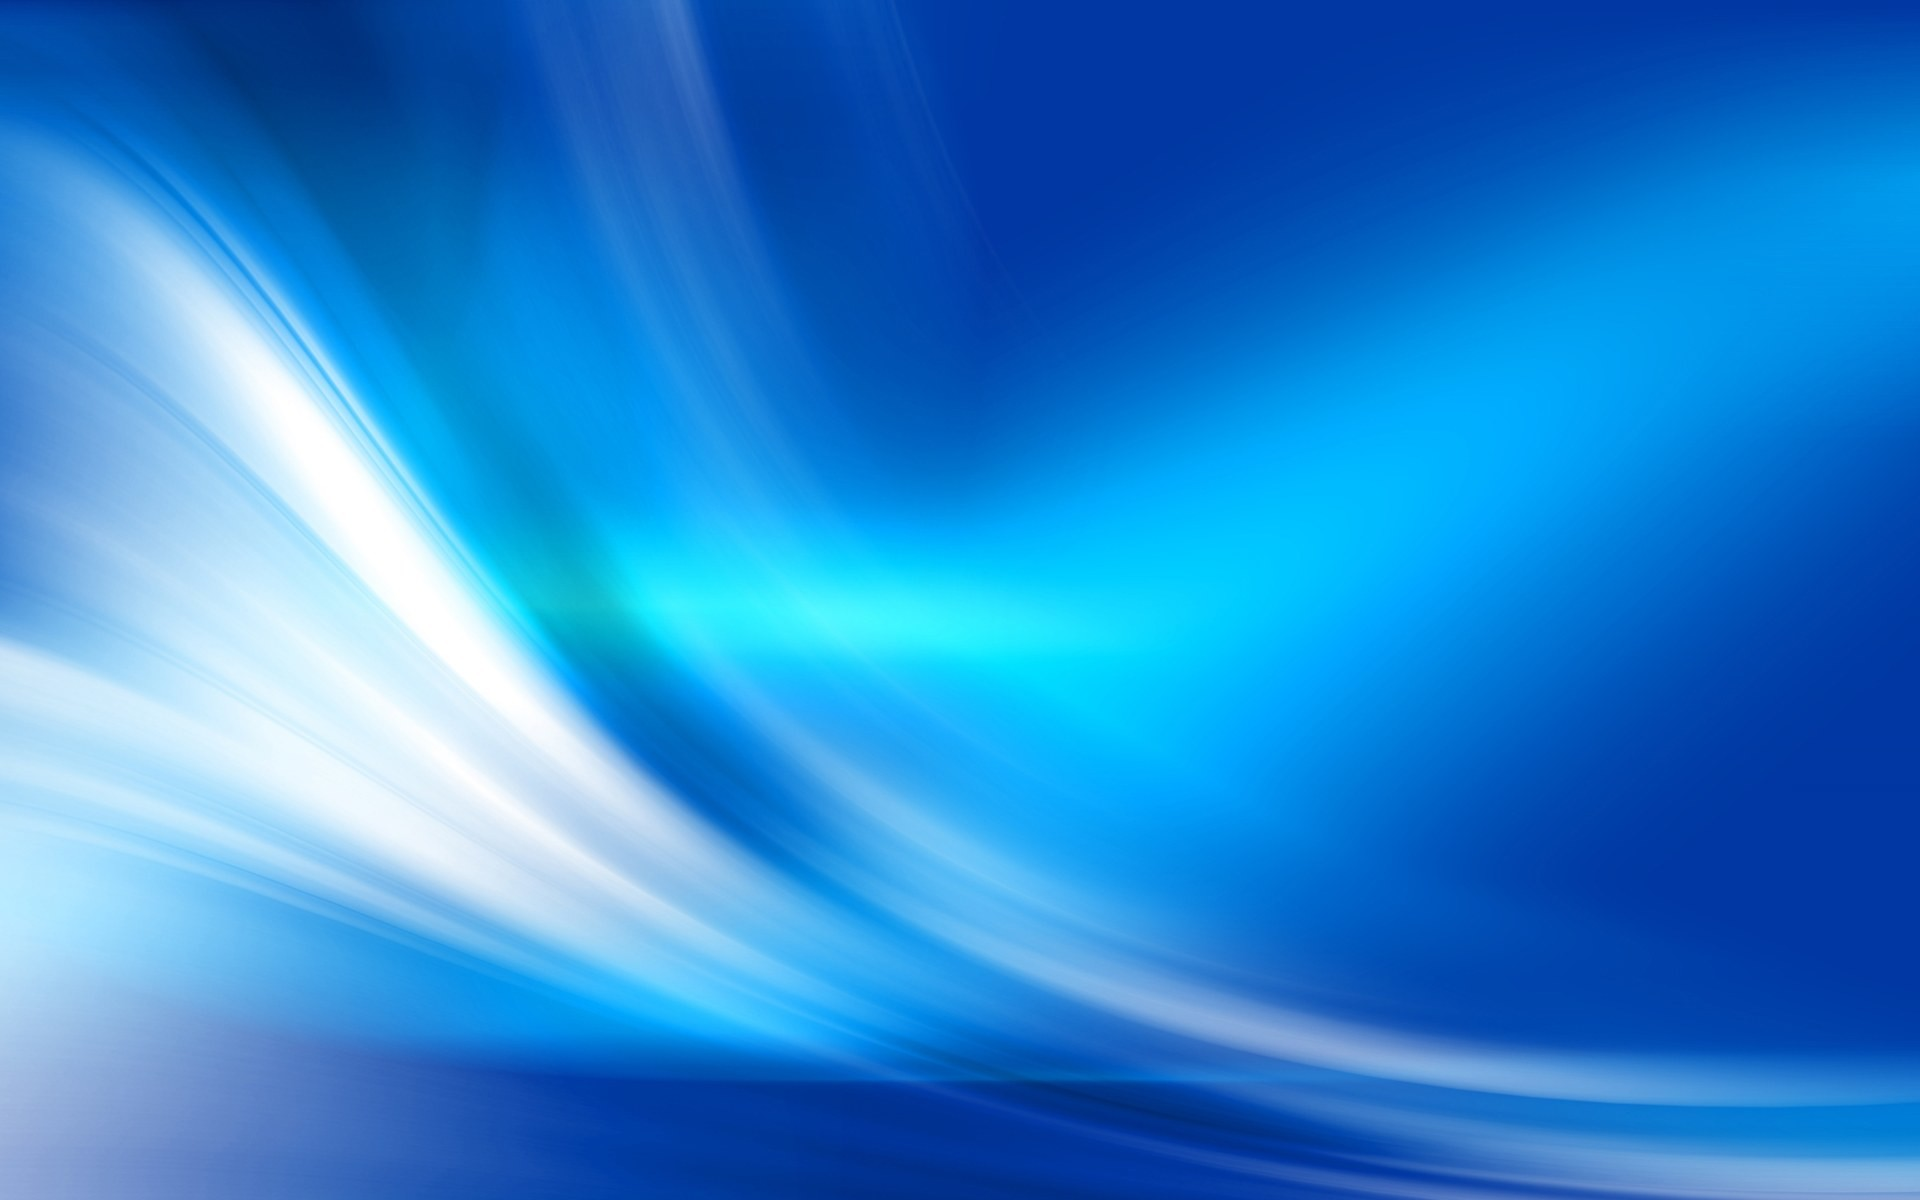 1920x1200 OXK: Pictures of Blue HD, Top Wallpapers Blue Wallpapers Wallpapers)